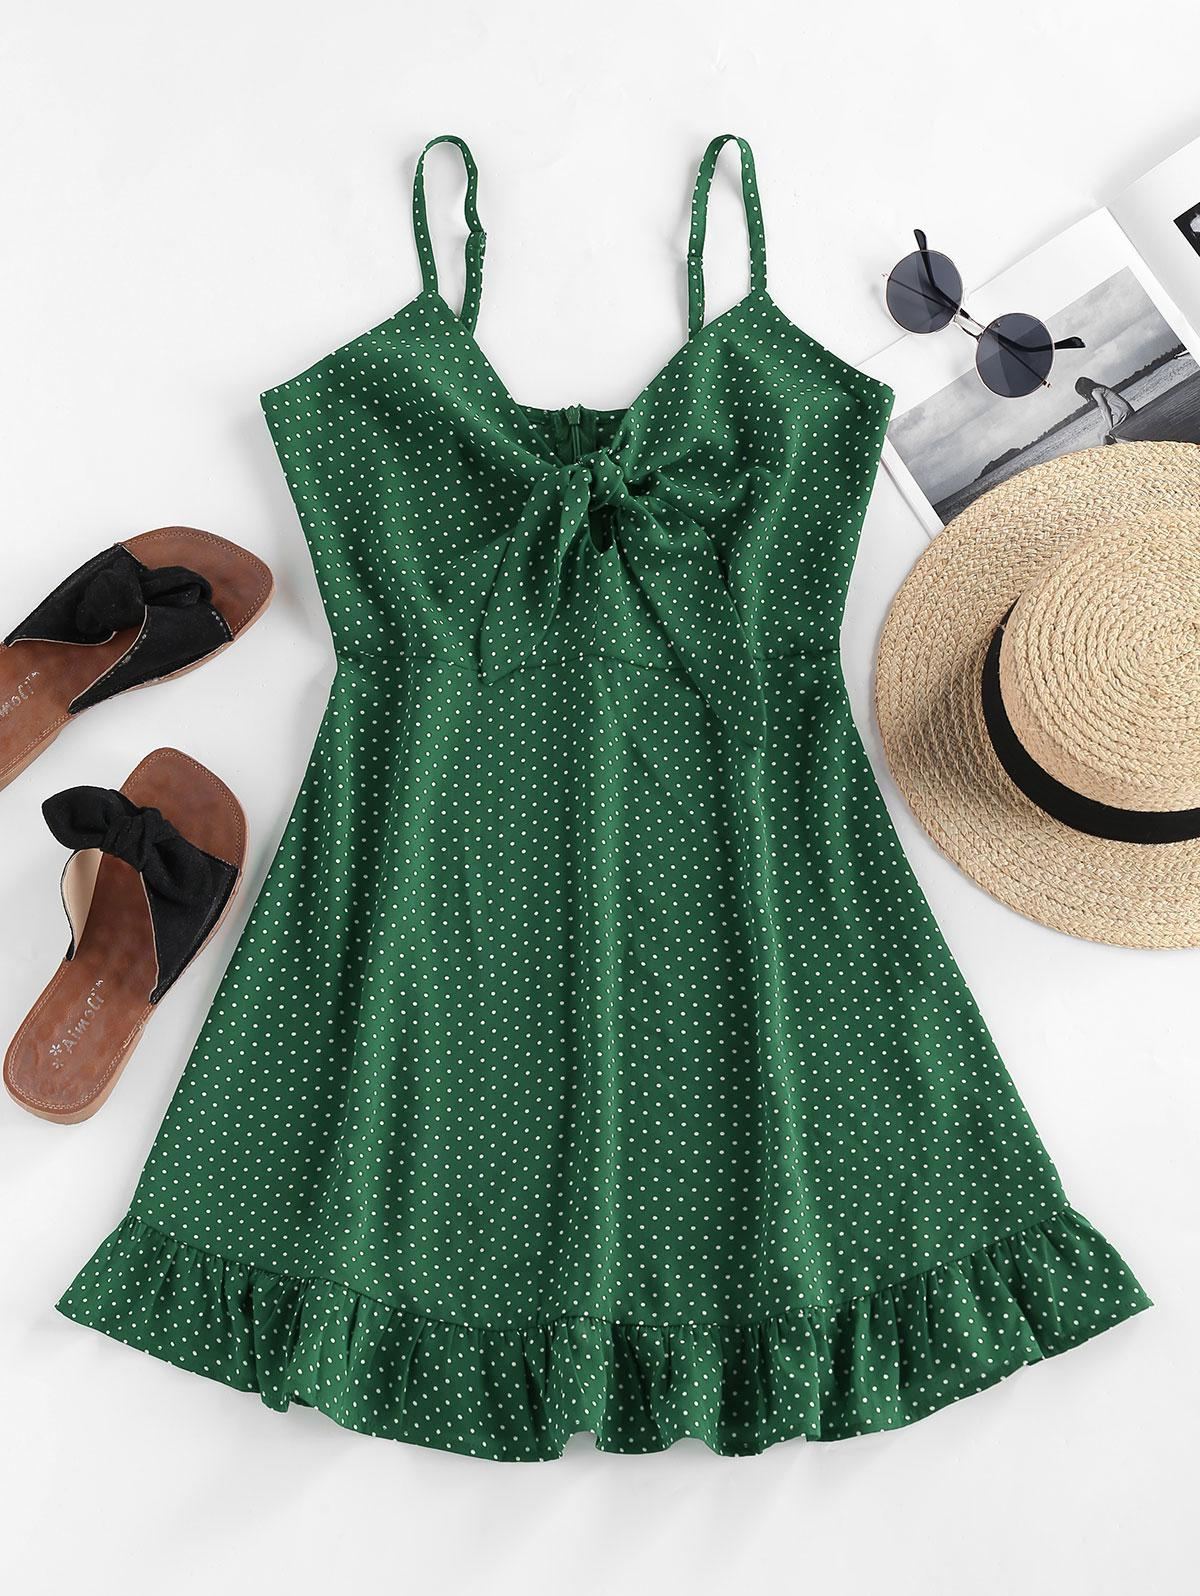 ZAFUL Ditsy Polka Dot Ruffle Knotted Dress